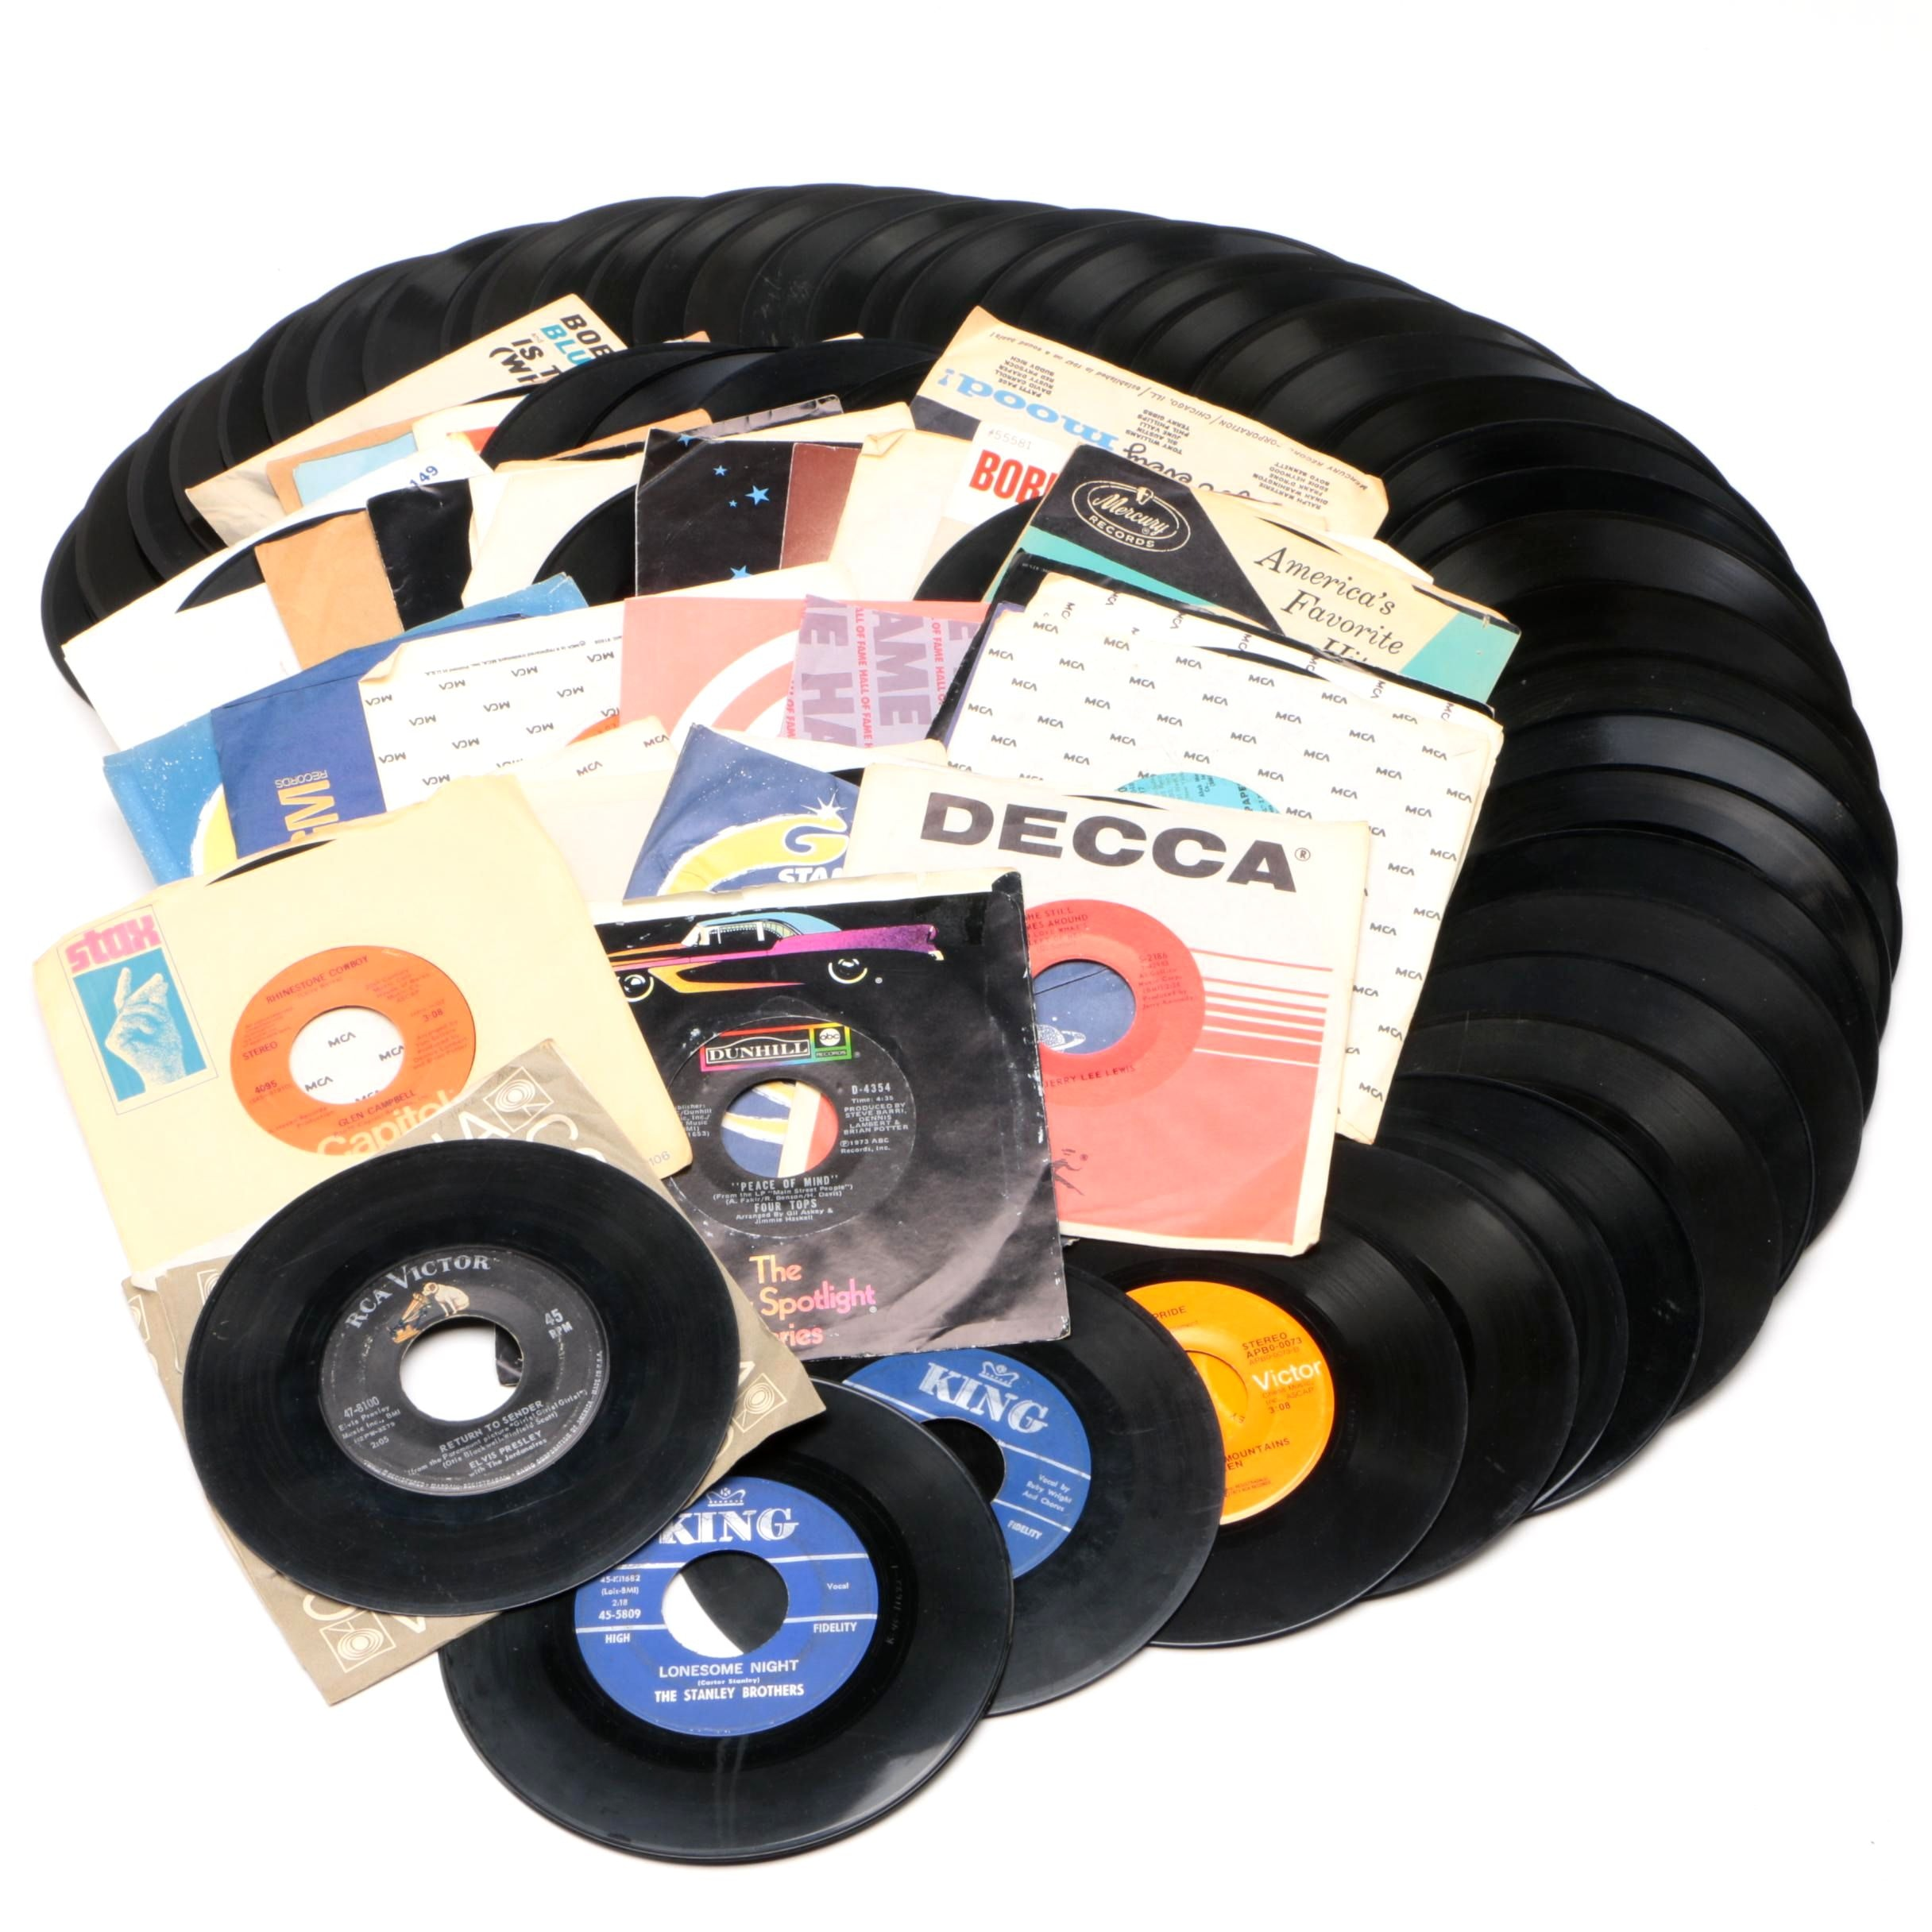 45 RPM Records Including 1950s and Early Country, Elvis, and King Label Records